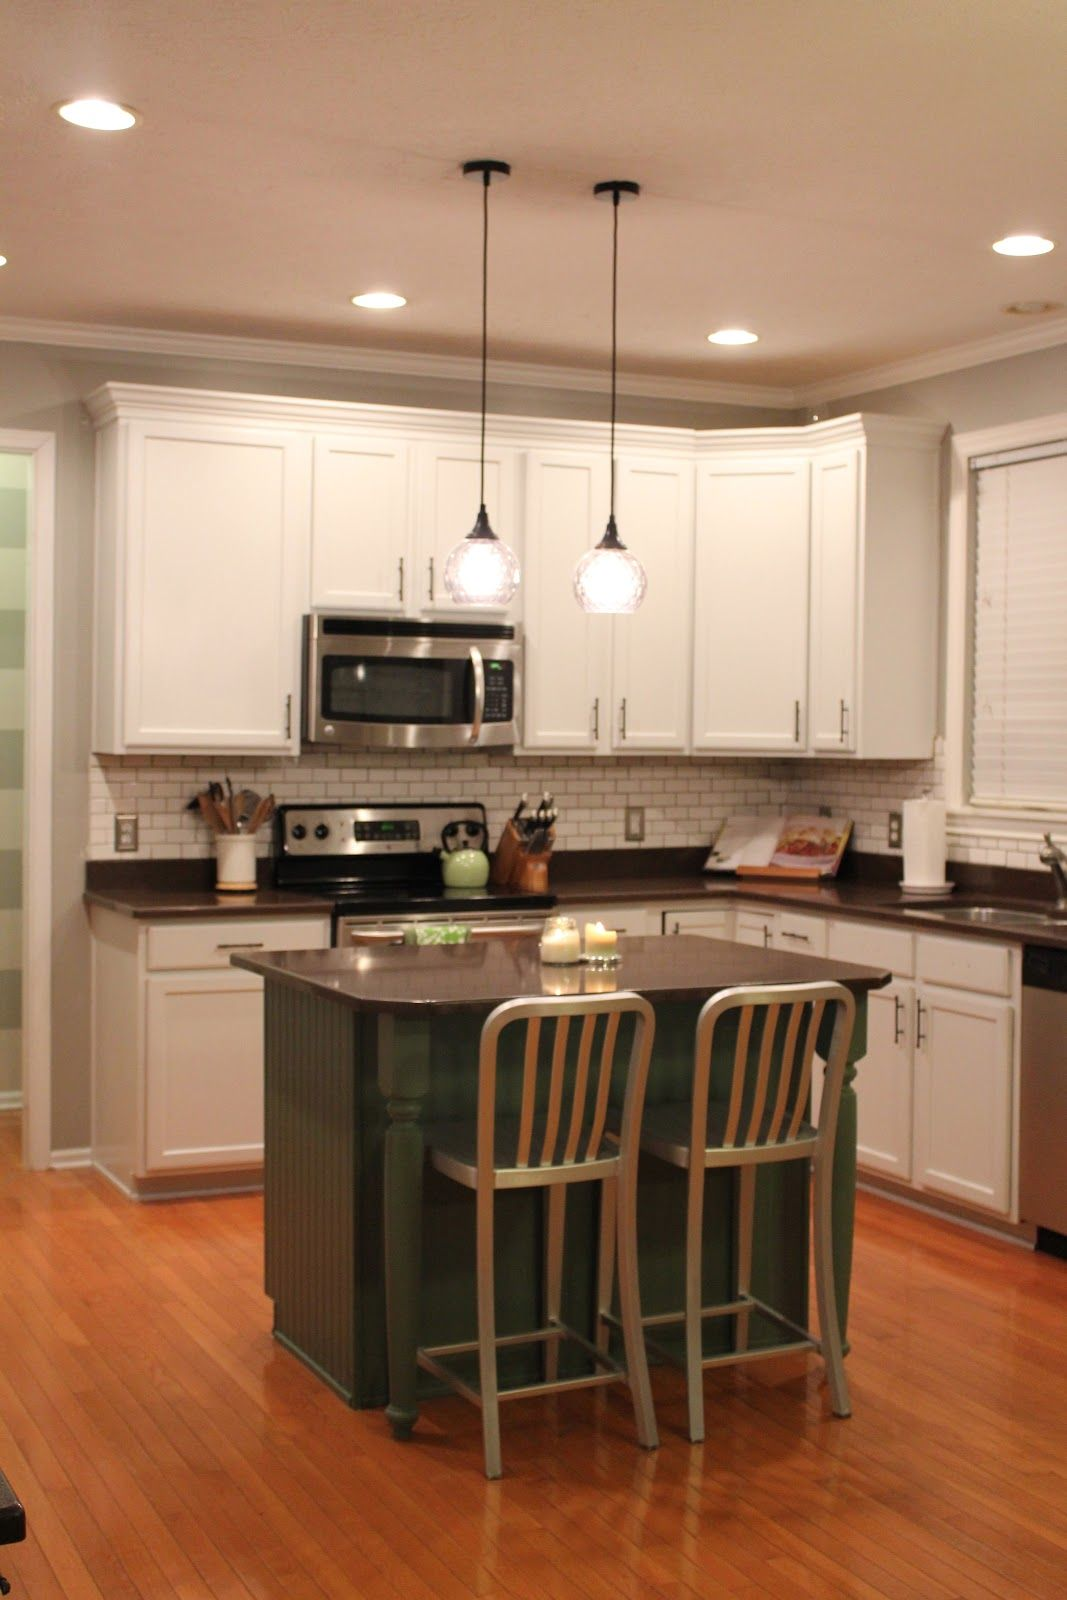 paint your kitchen cabinets in 5 easy steps project city good paint your kitchen cabinets in 5 easy steps project city